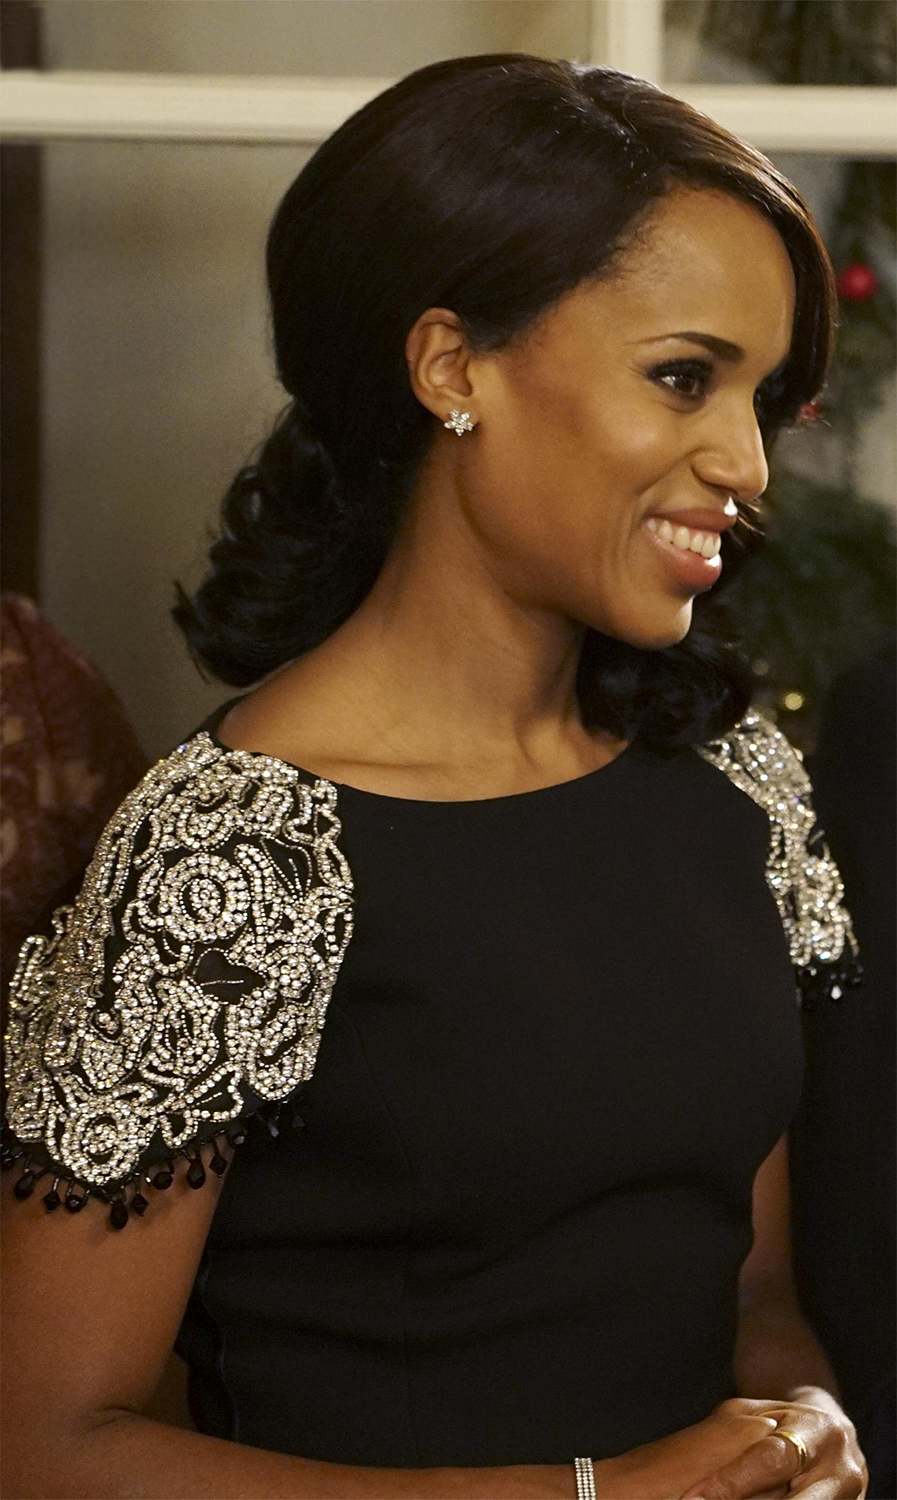 Olivia Pope wearing Tiffany & Co. jewelry on Scandal.